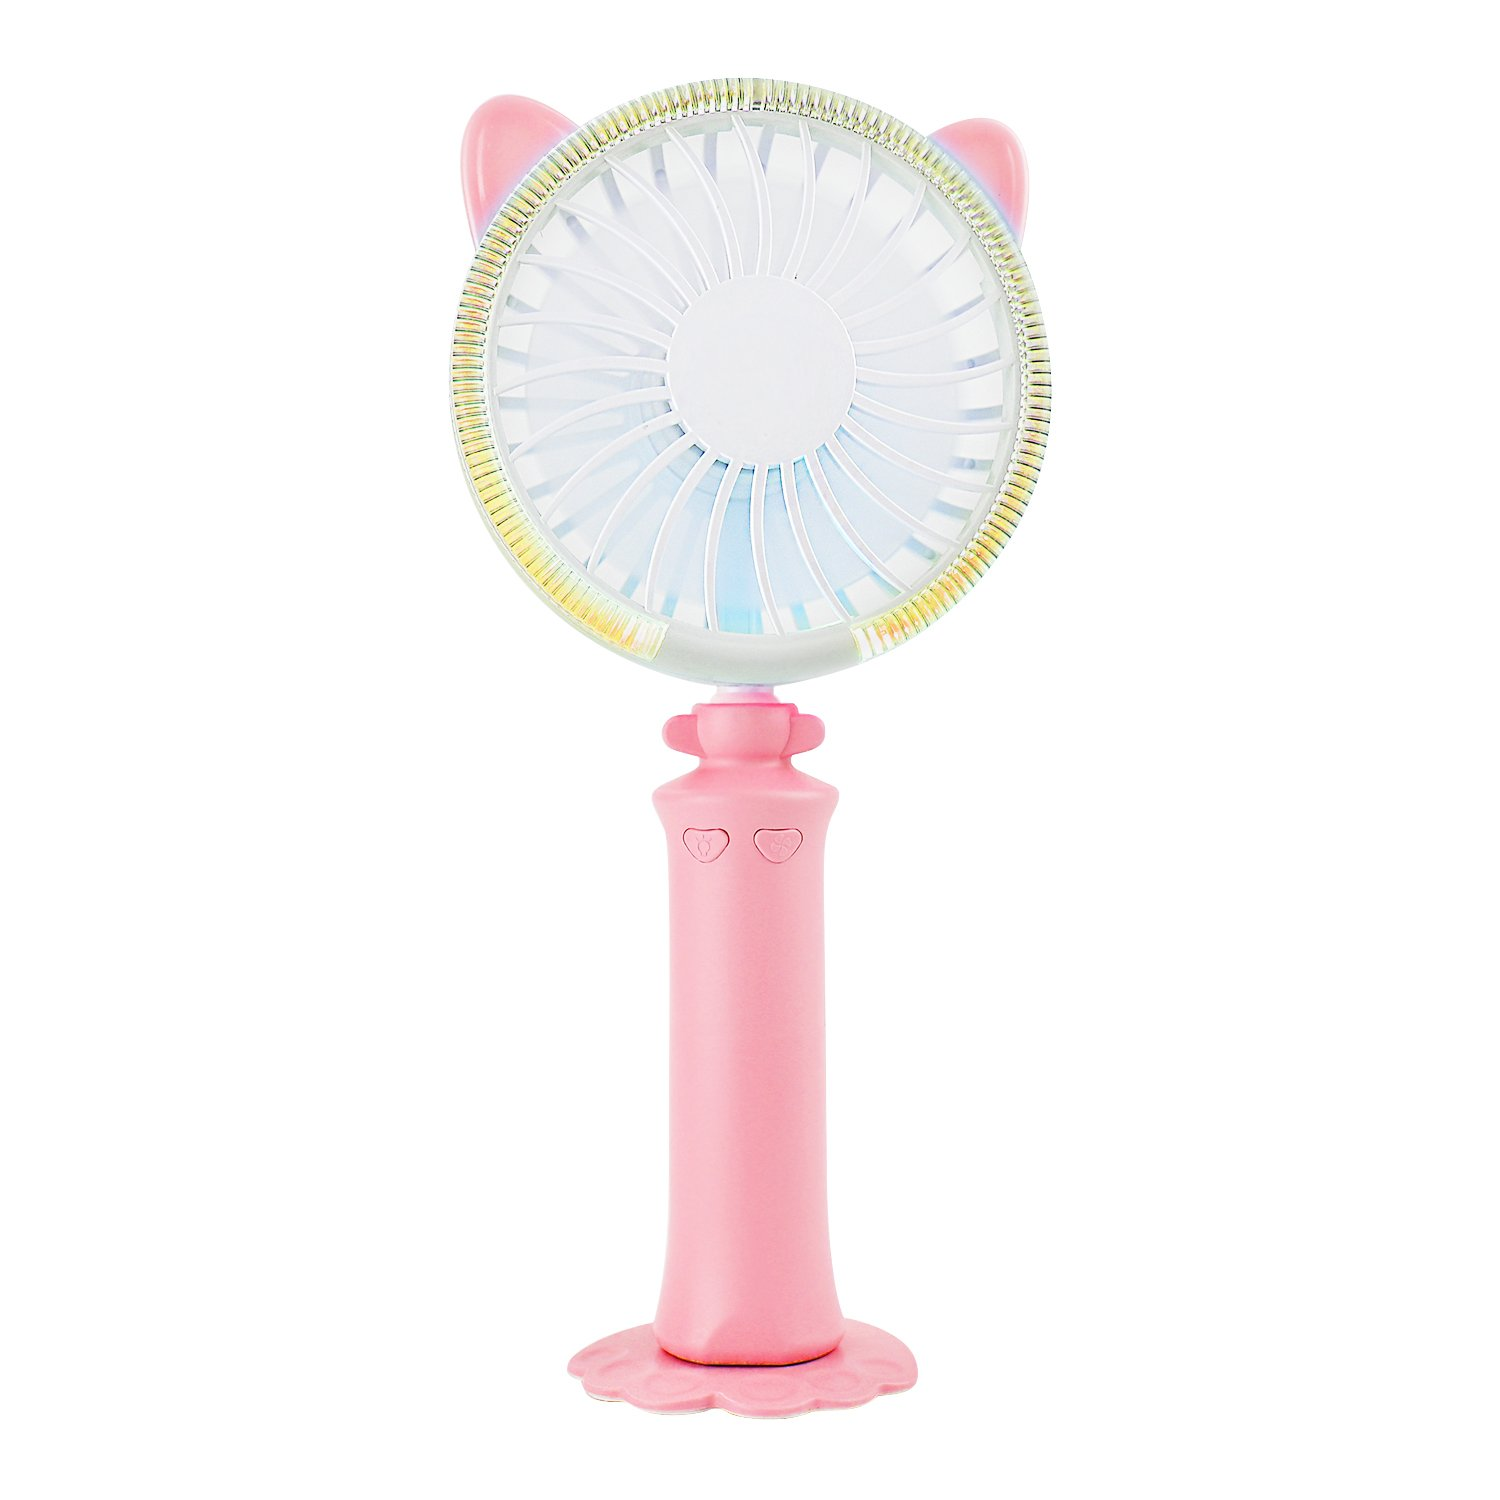 VOTONES Portable Cute Cat Fan,Mini LED Light Handheld Personal Fan Built-in 1200mA USB Rechargeable,with Base Adjustable Angle&Wind Suitable to Travel,Home,Office Desk for Kids Adults(Pink)